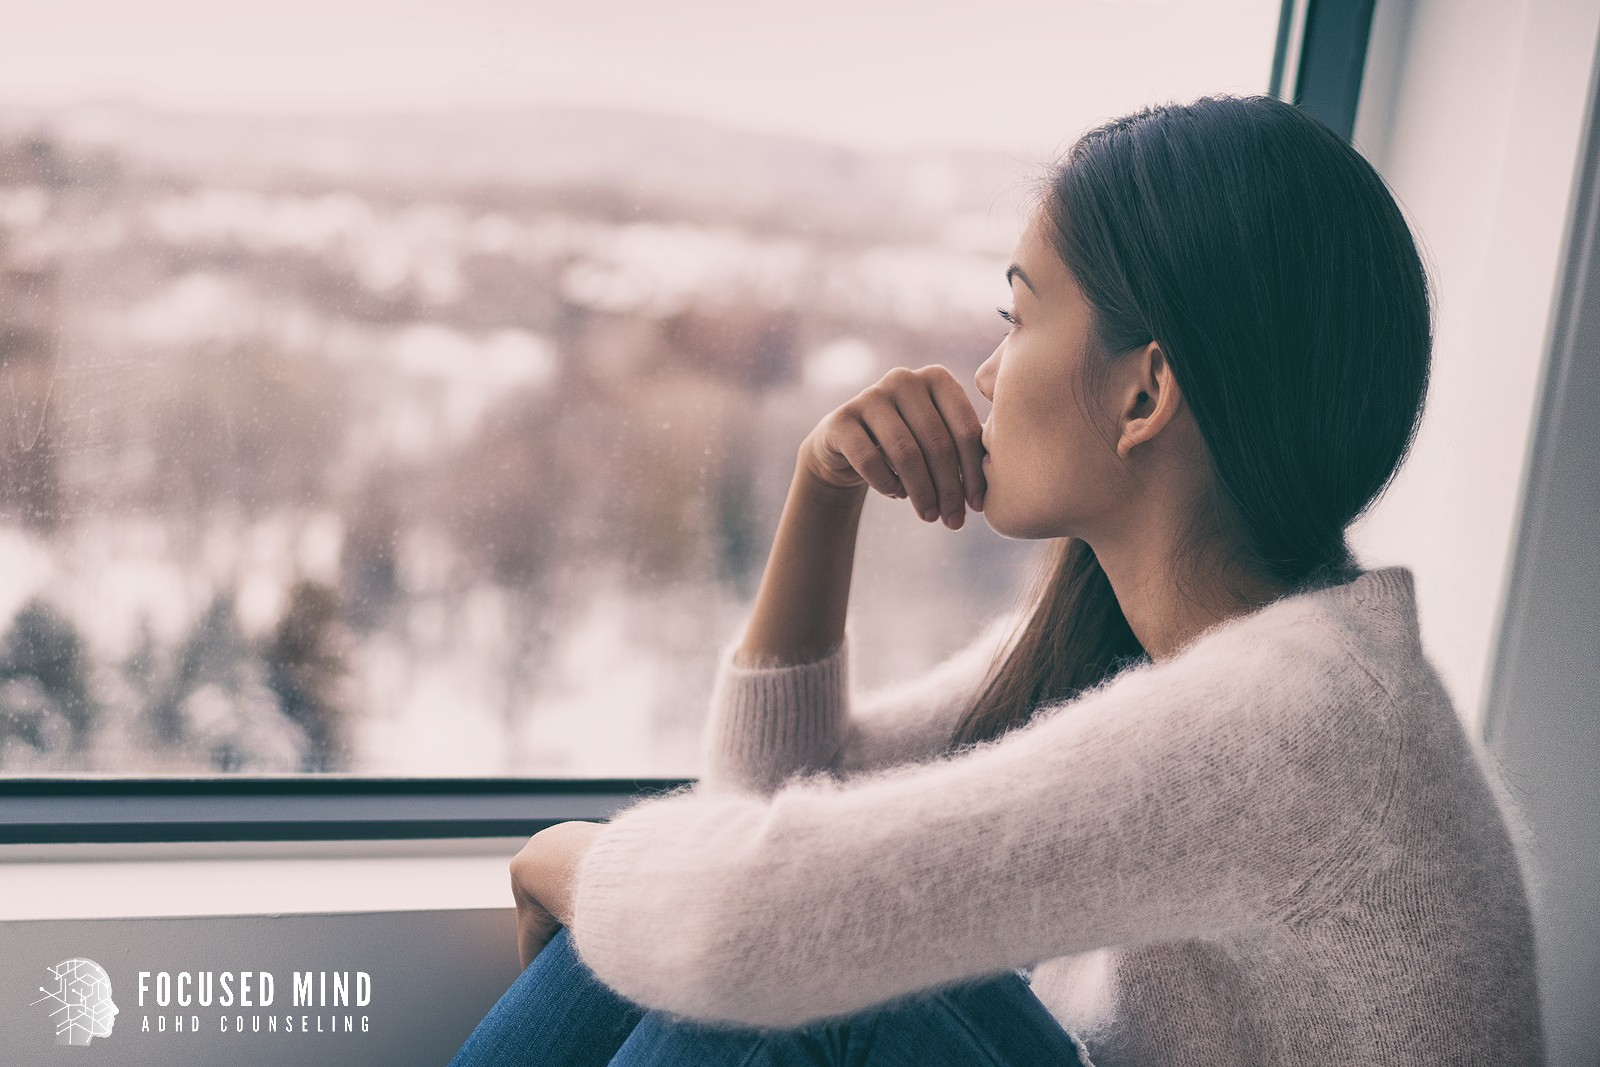 A young woman looks out a window with a concerned look. This could represent negative ADHD symptoms clouding one's mind. Focused Mind ADHD Counseling offers support with ADHD testing in Columbus, OH. Learn more about our adult ADHD quiz today!